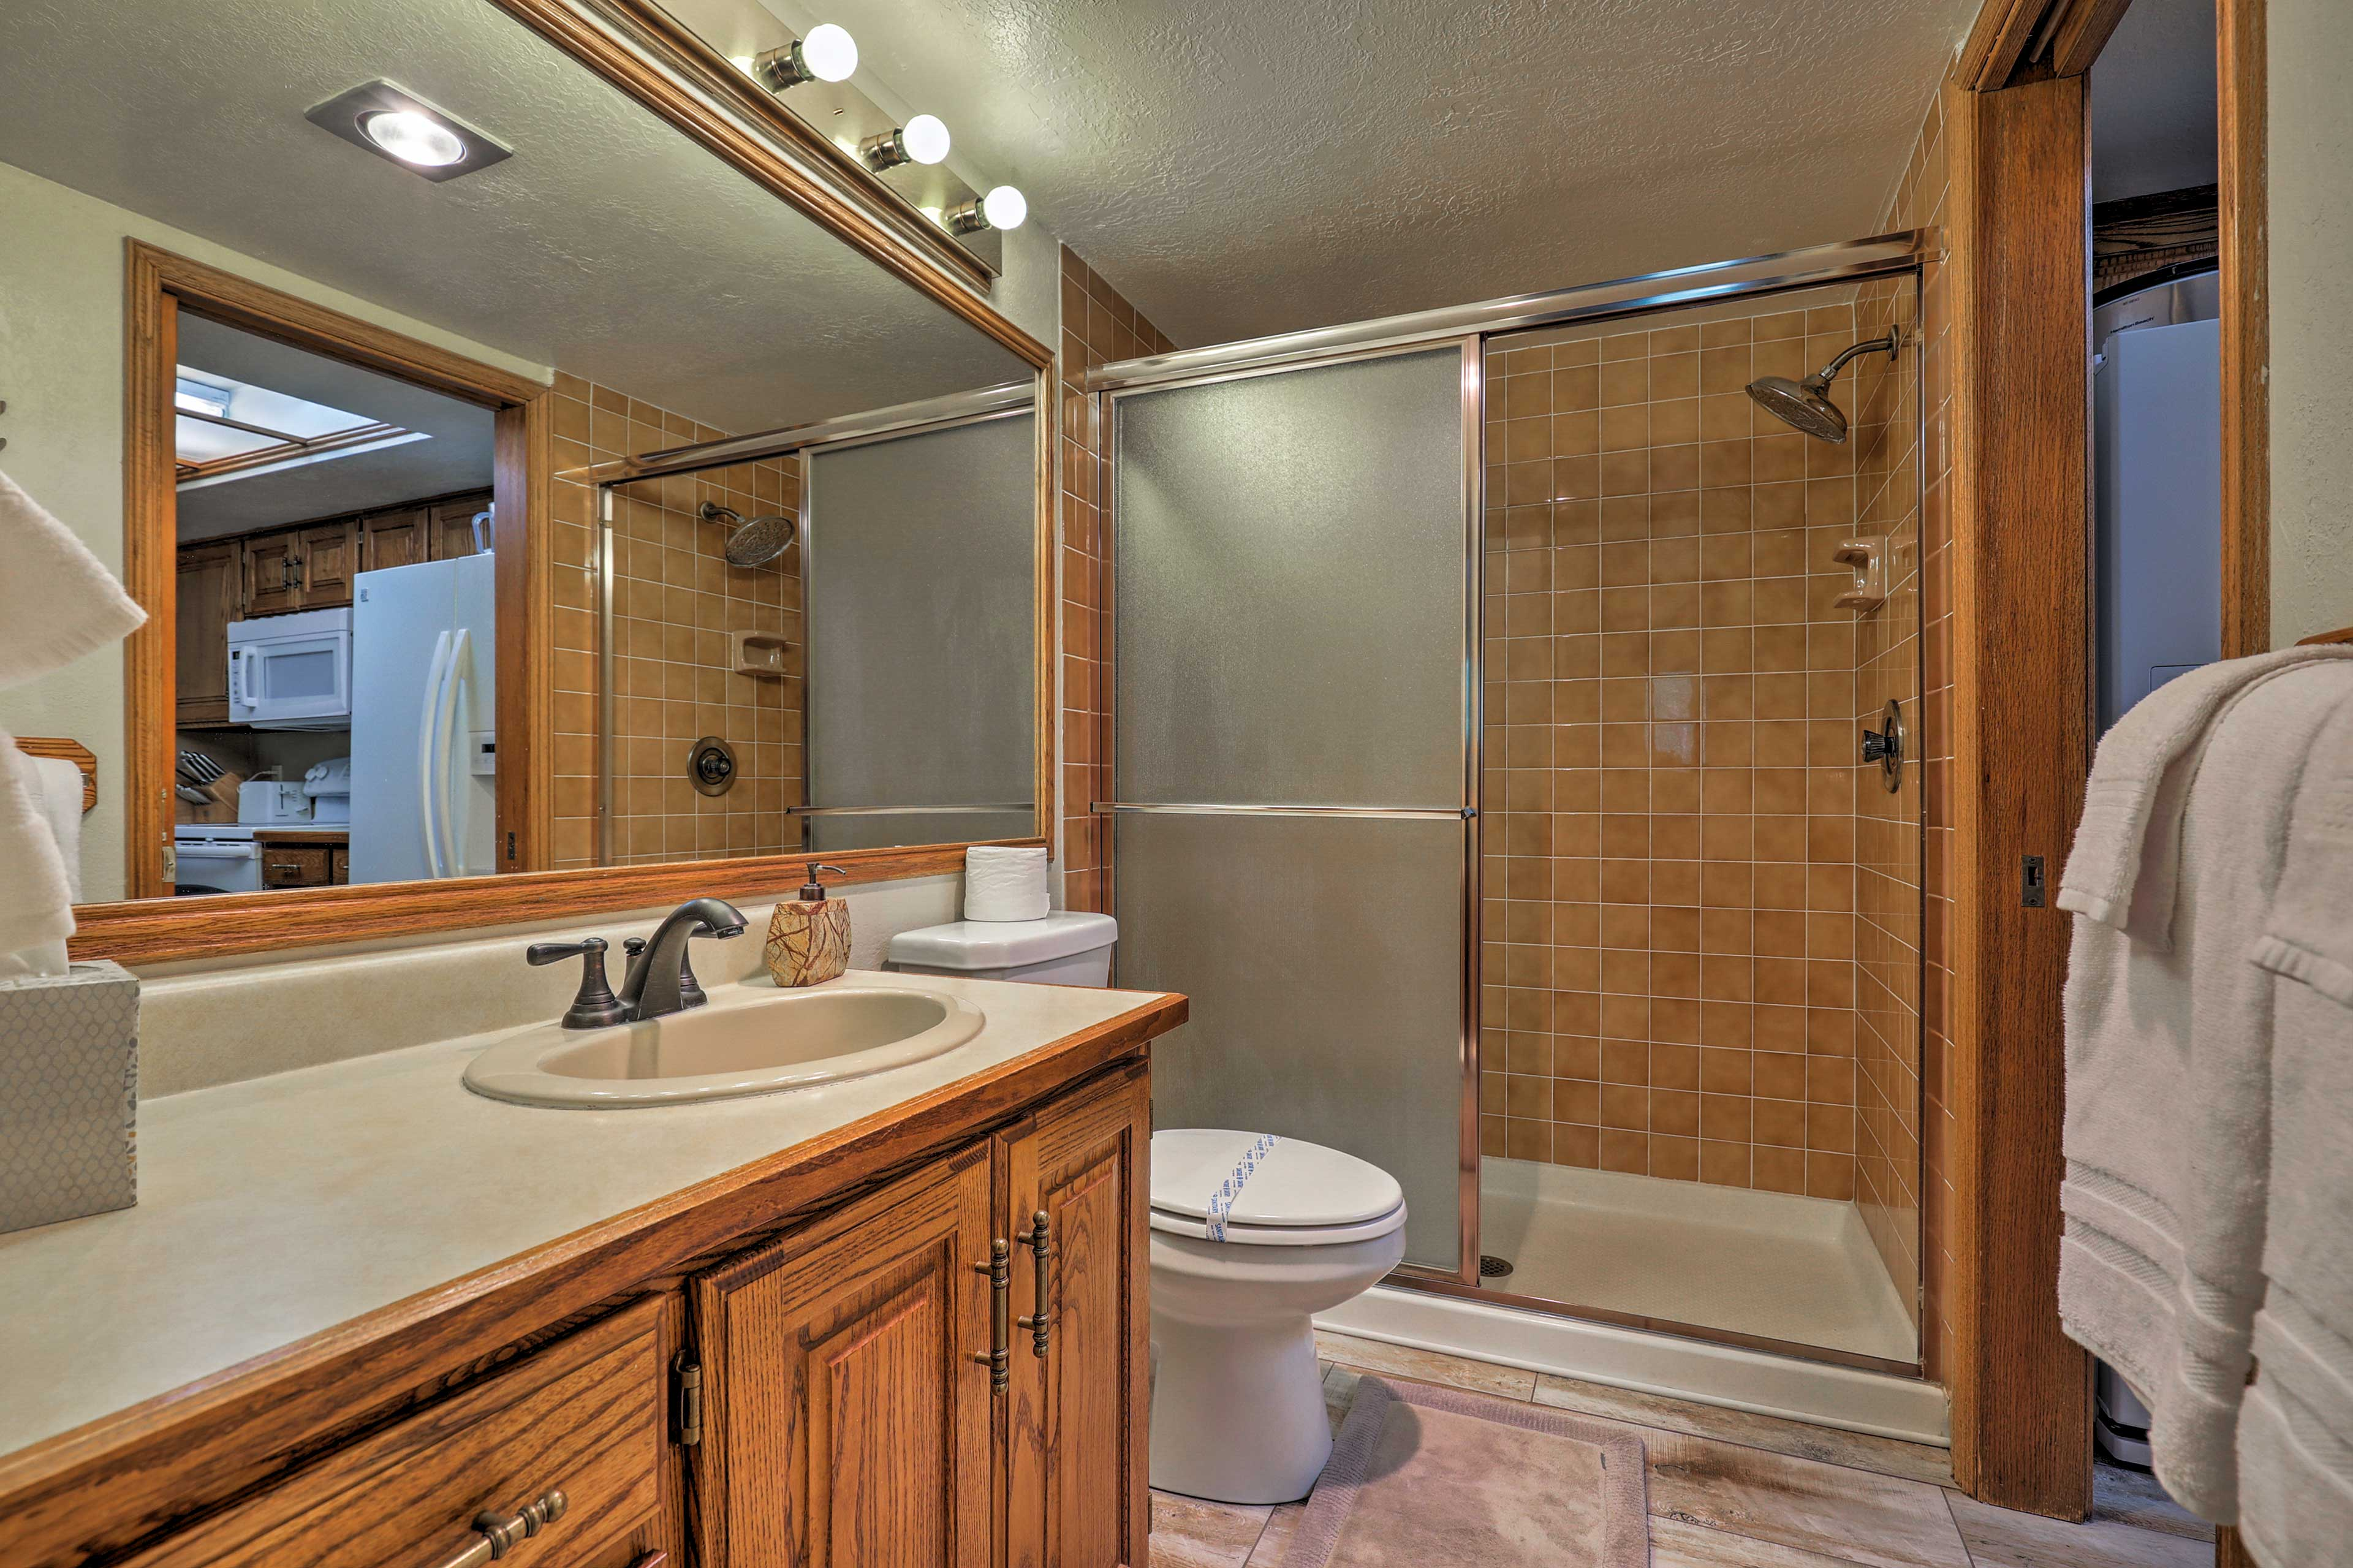 The second full bathroom offers a walk-in shower.